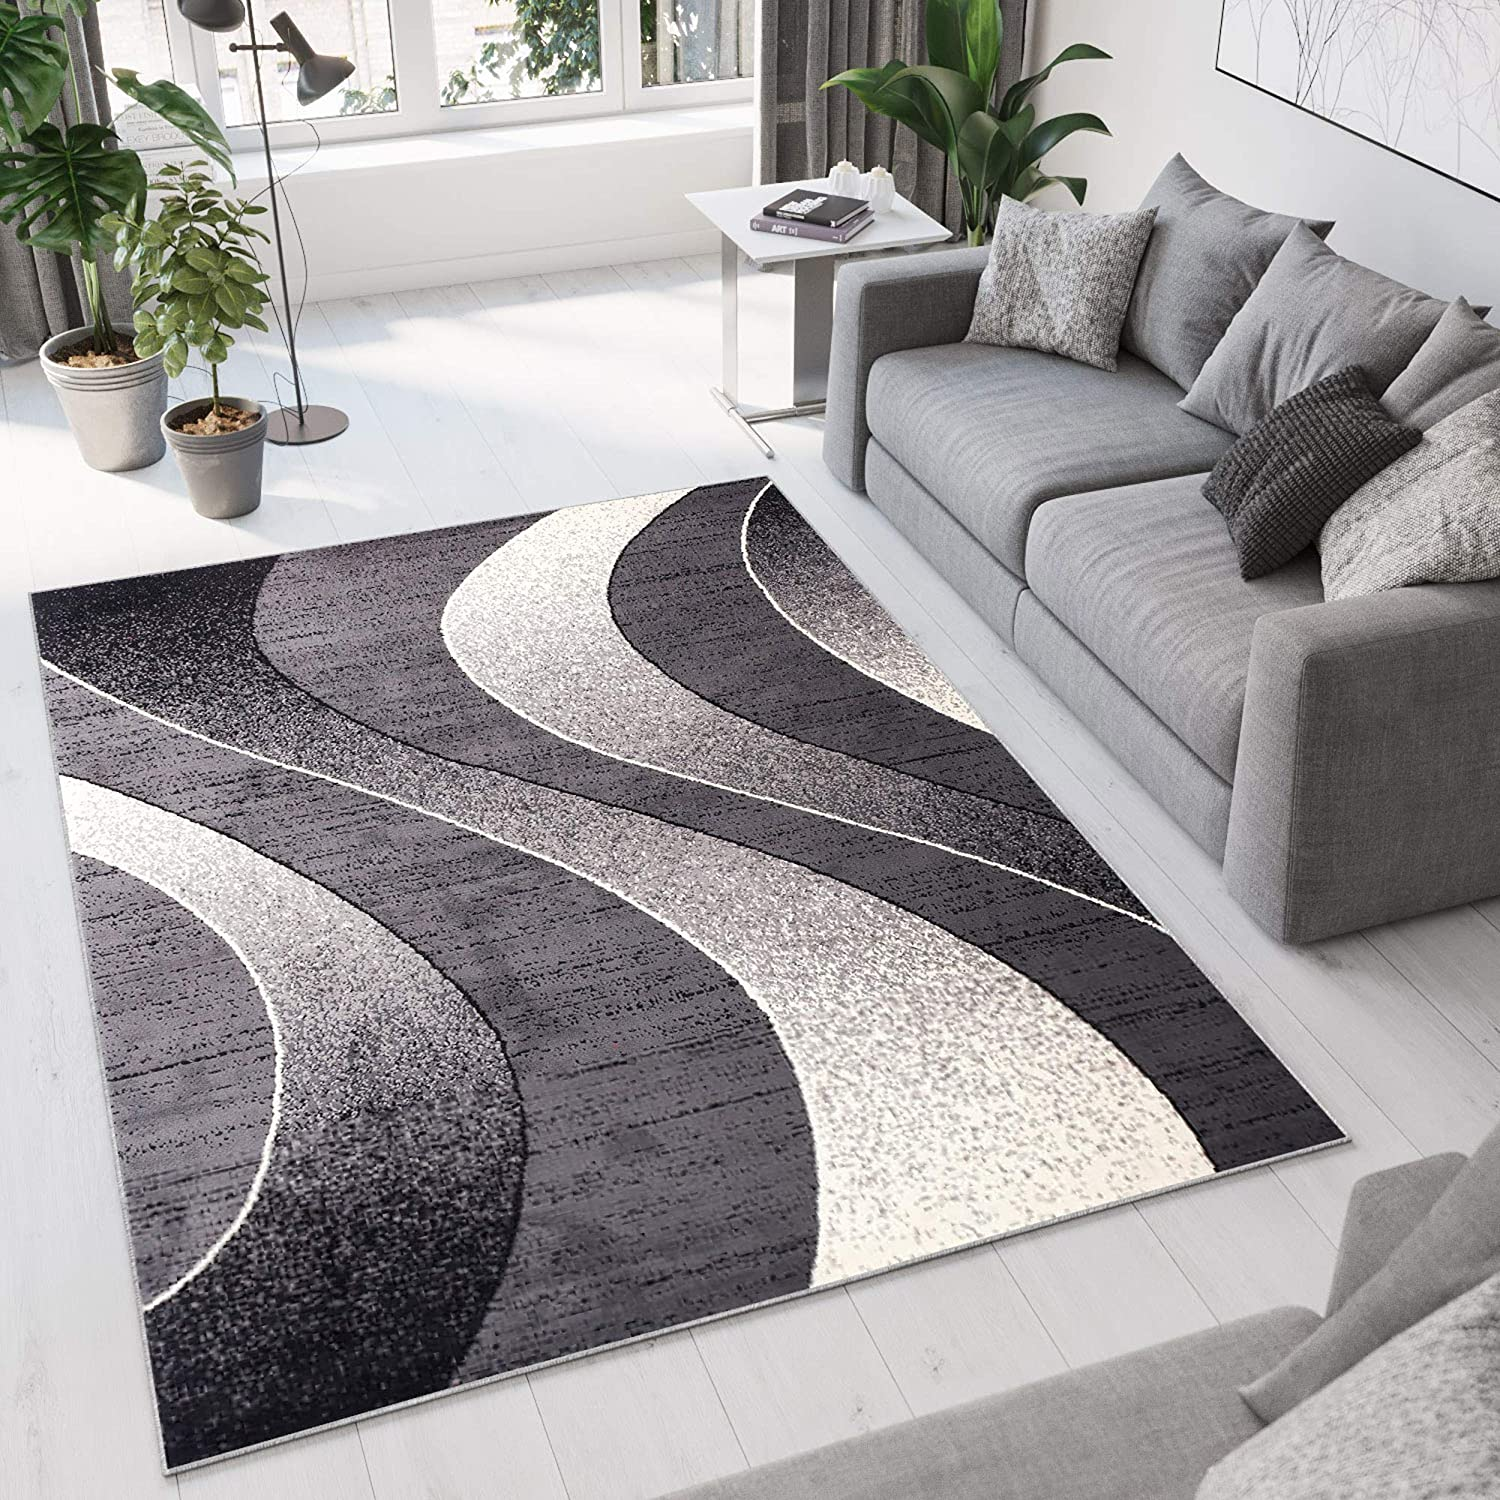 Tapiso Area Rugs Living Room Bedroom Modern Dark Grey Waves Contemporary  Pattern Durable Carpet Dream Collection Size - 160 x 220 cm (5ft3 x 7ft3)